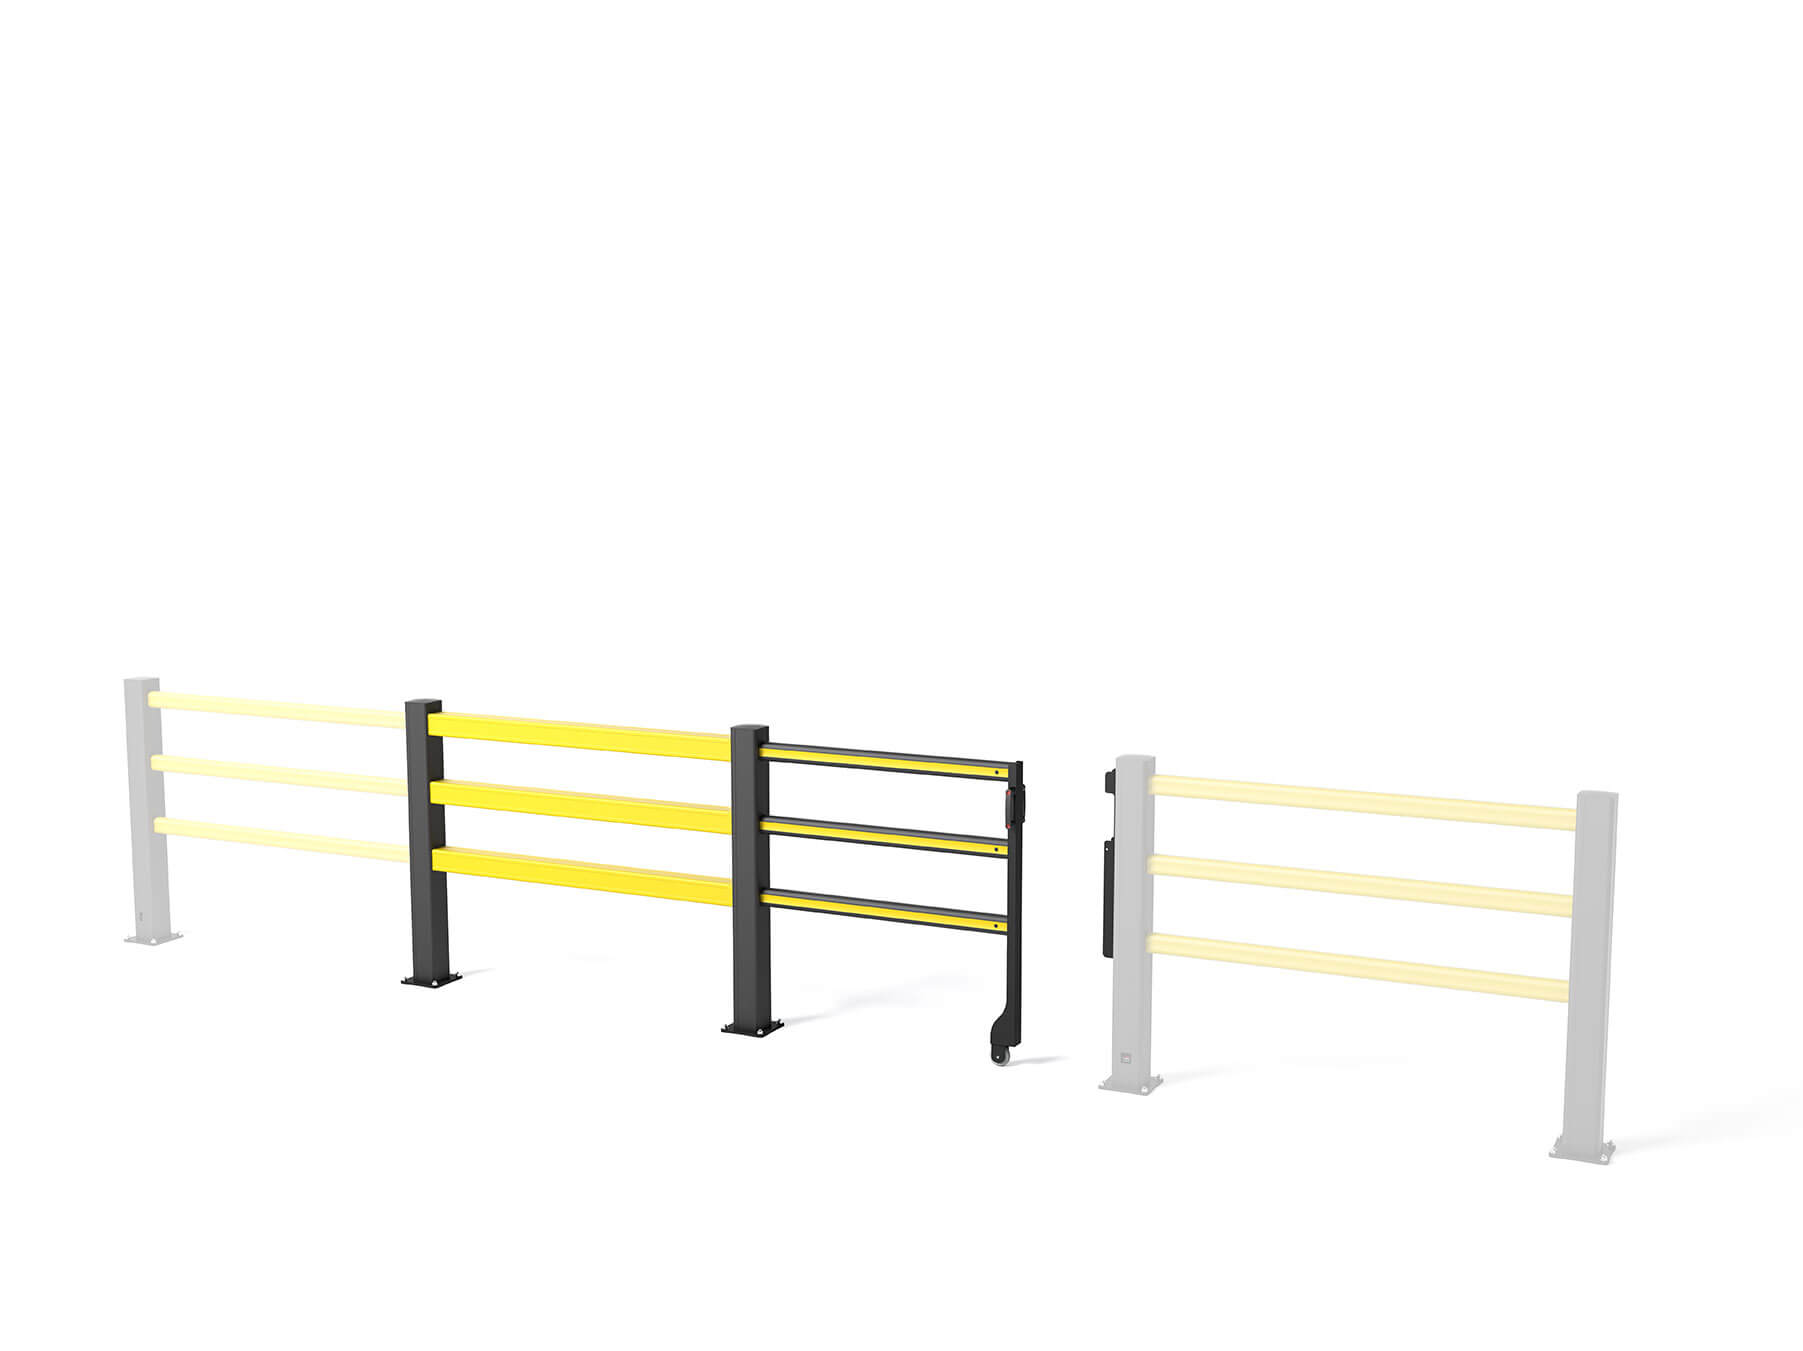 Flex Impact Safety Gate SG Sliding